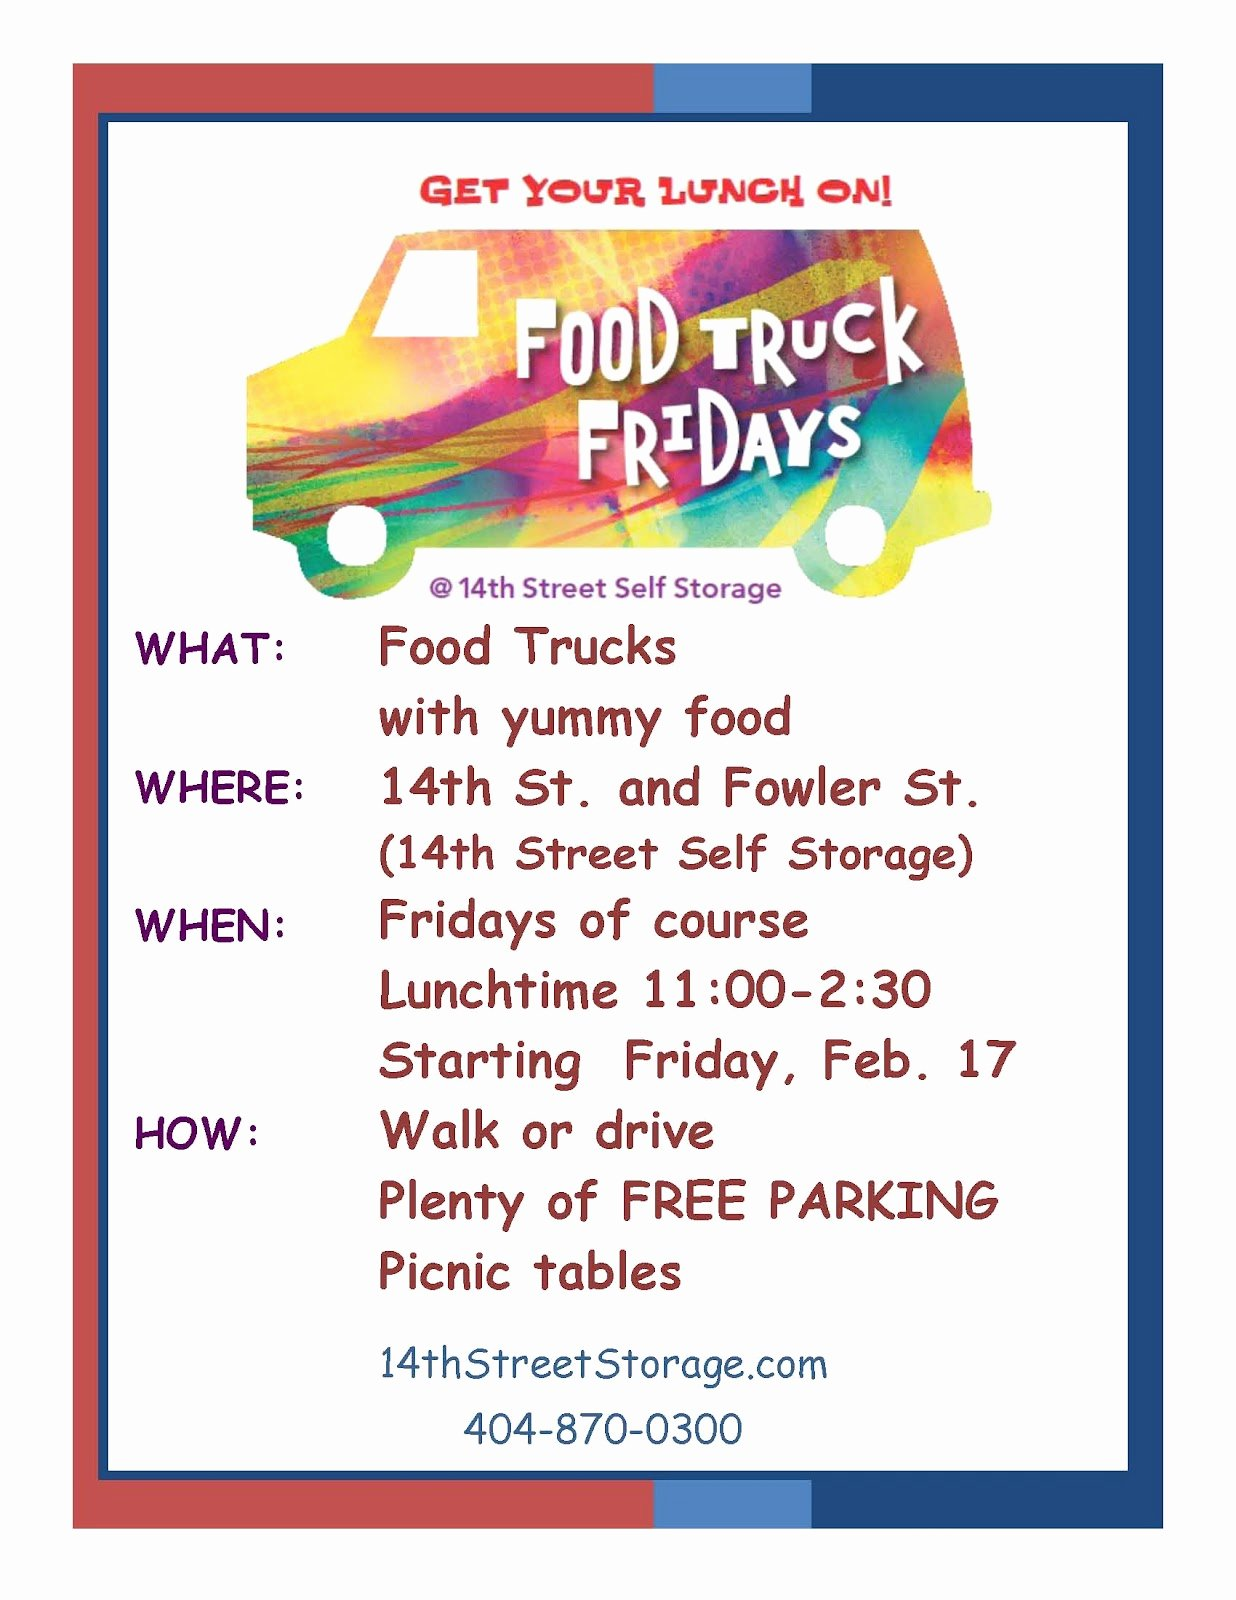 Food Truck Menu Template Luxury Everything Midtown atlanta Food Truck Friday S at 14th